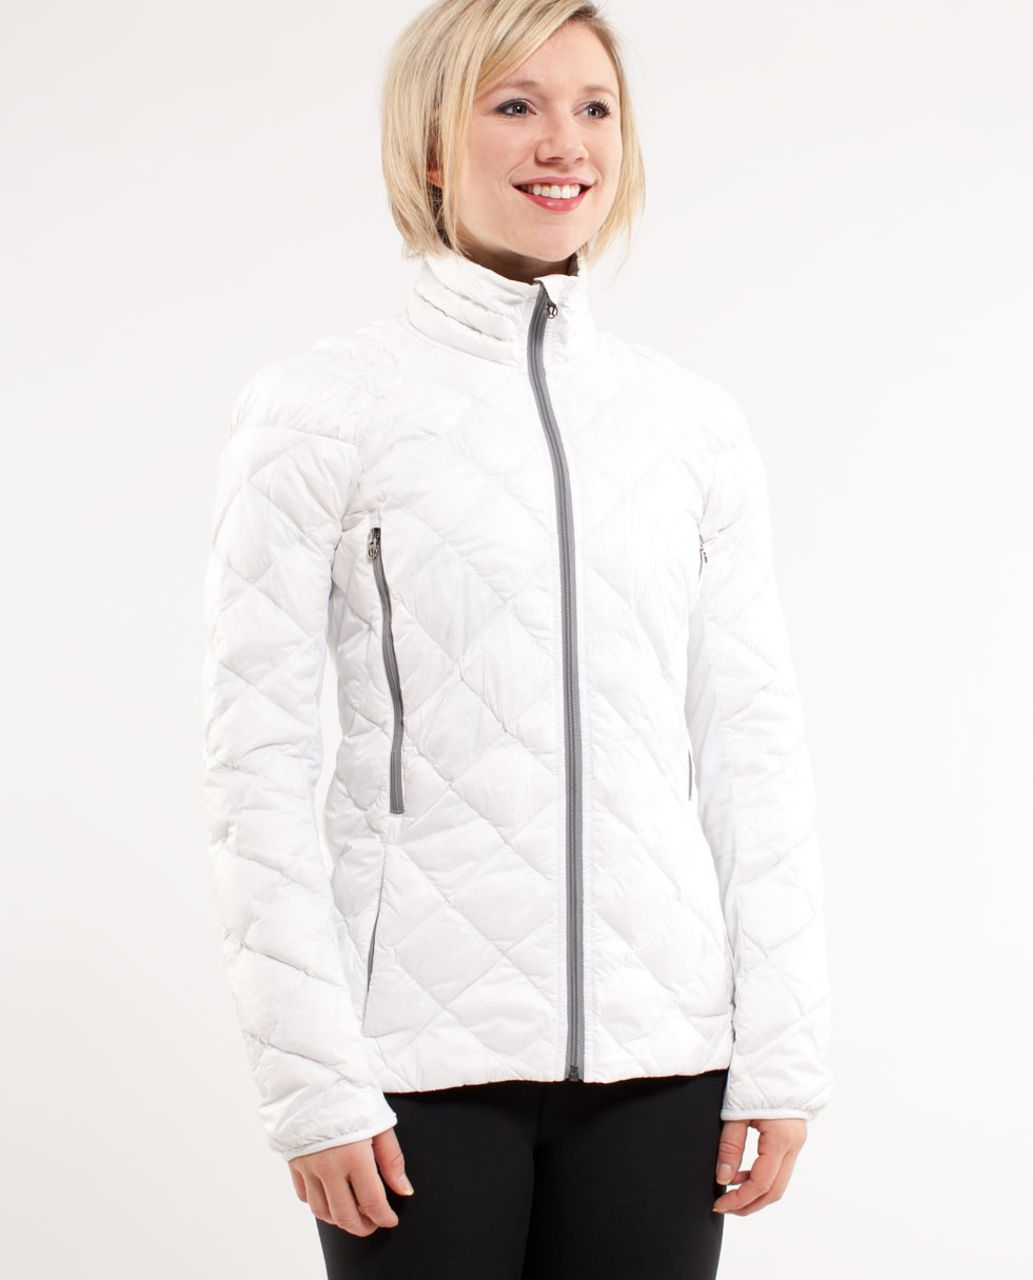 Lululemon Run:  Turn Around Jacket - White /  Grey Houndstooth